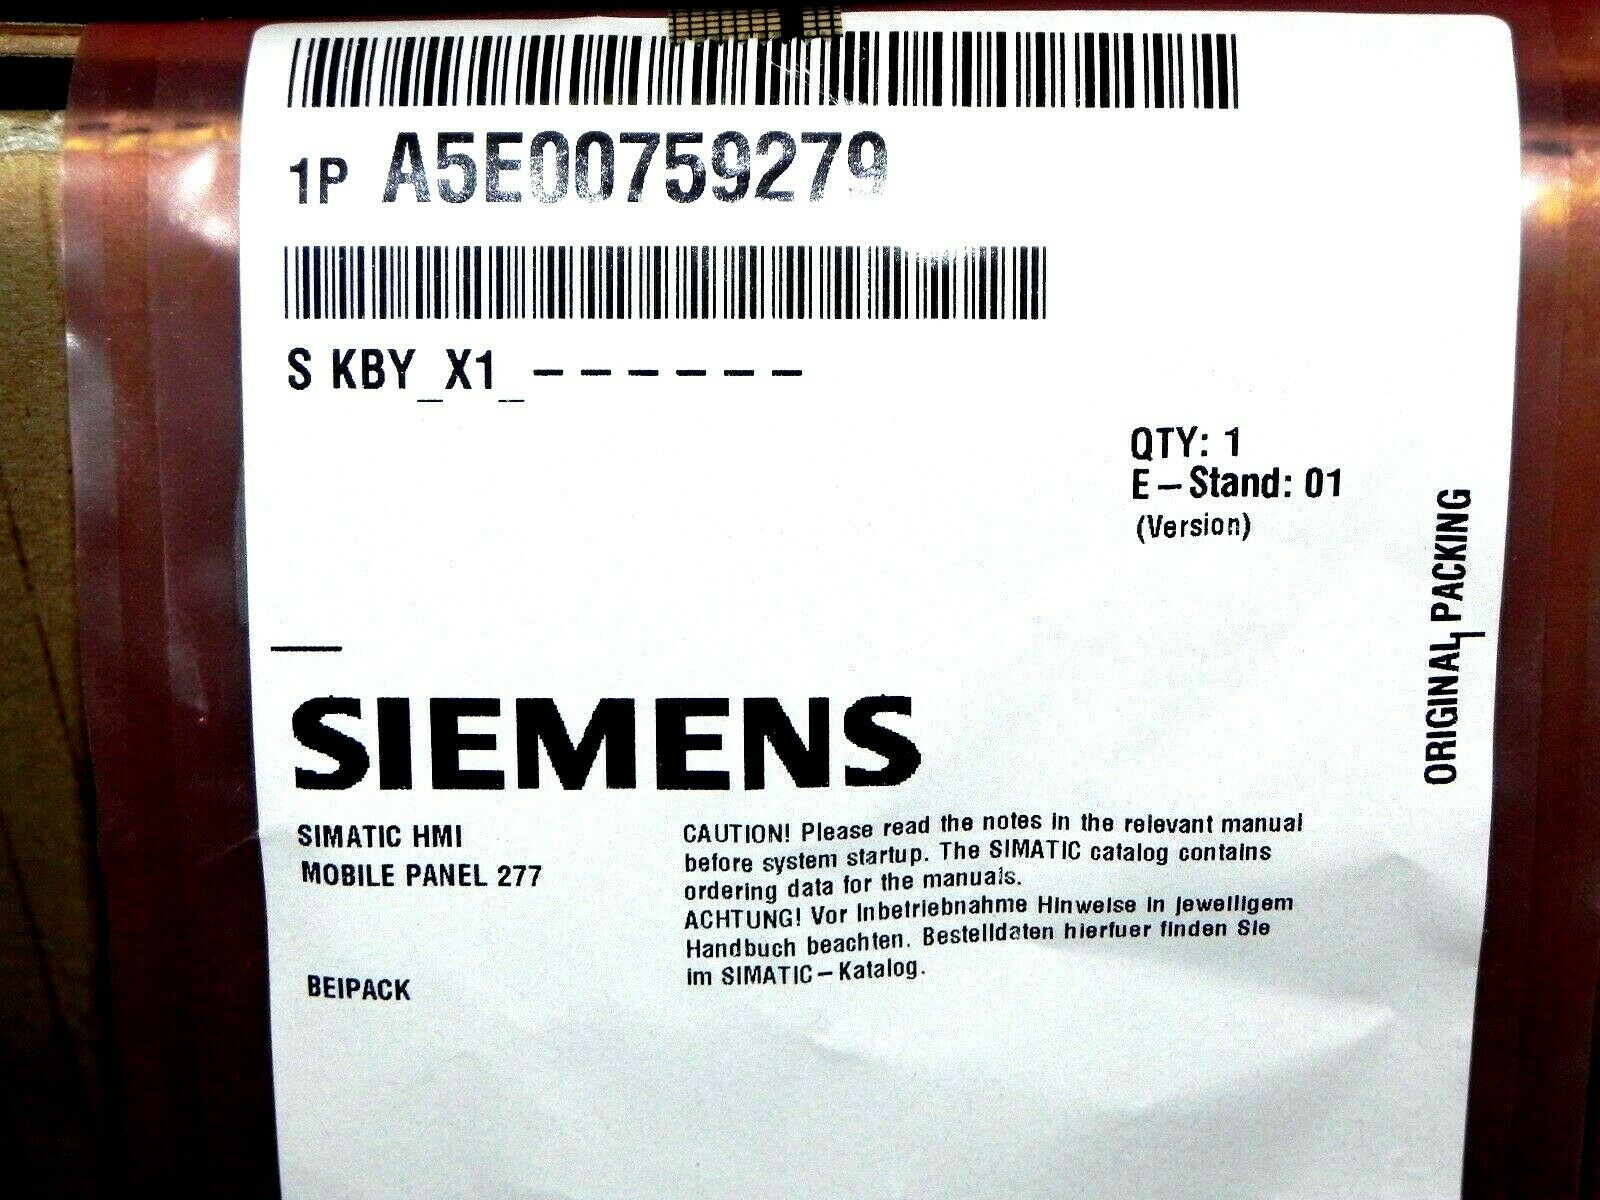 NEW For SIEMENS Touch Screen MOBILE PANEL 277 6AV6645-0CA01-0AX0 #HD38 YD